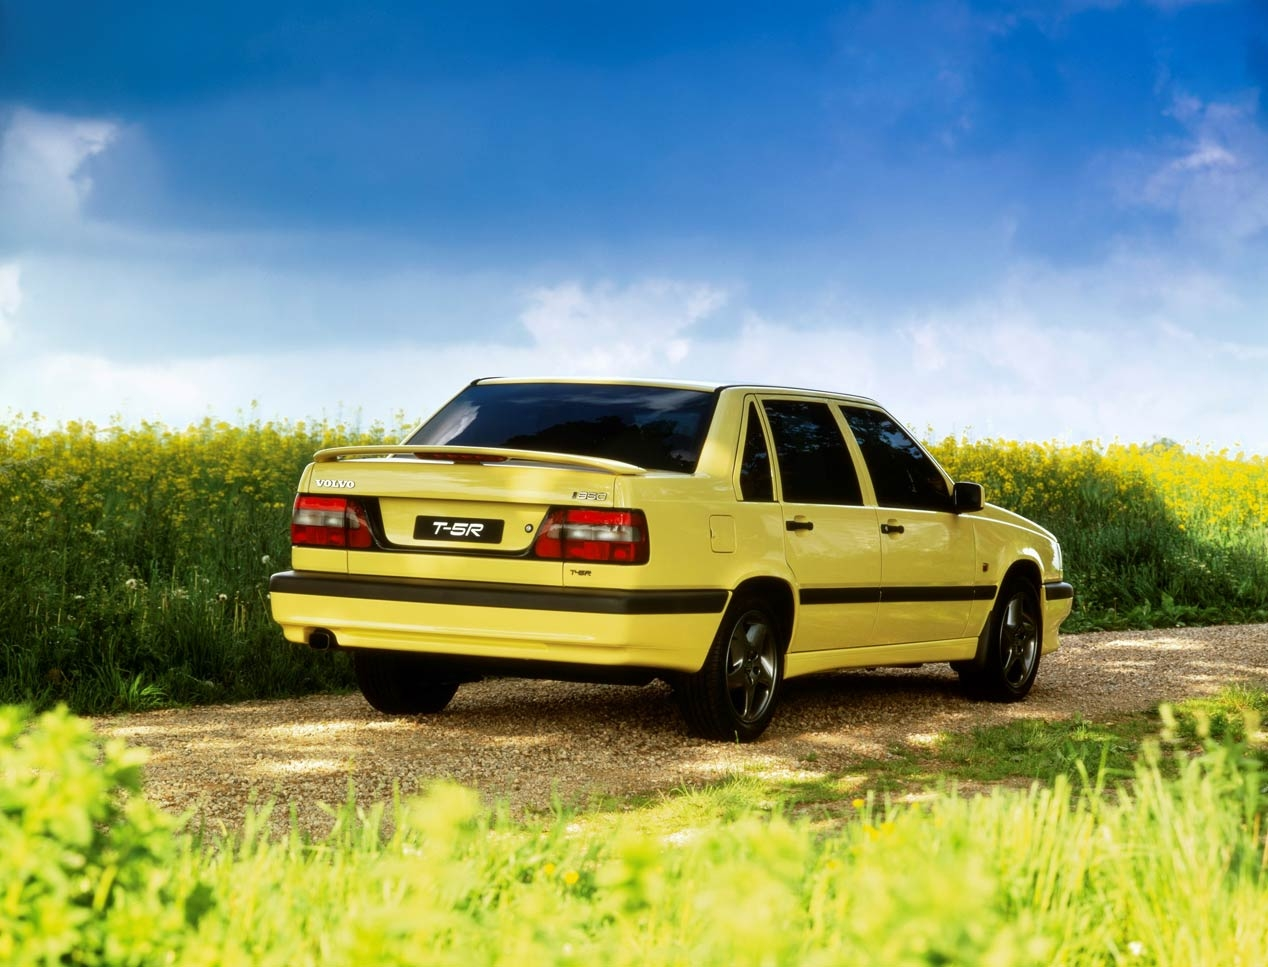 The Volvo 850 turns 25